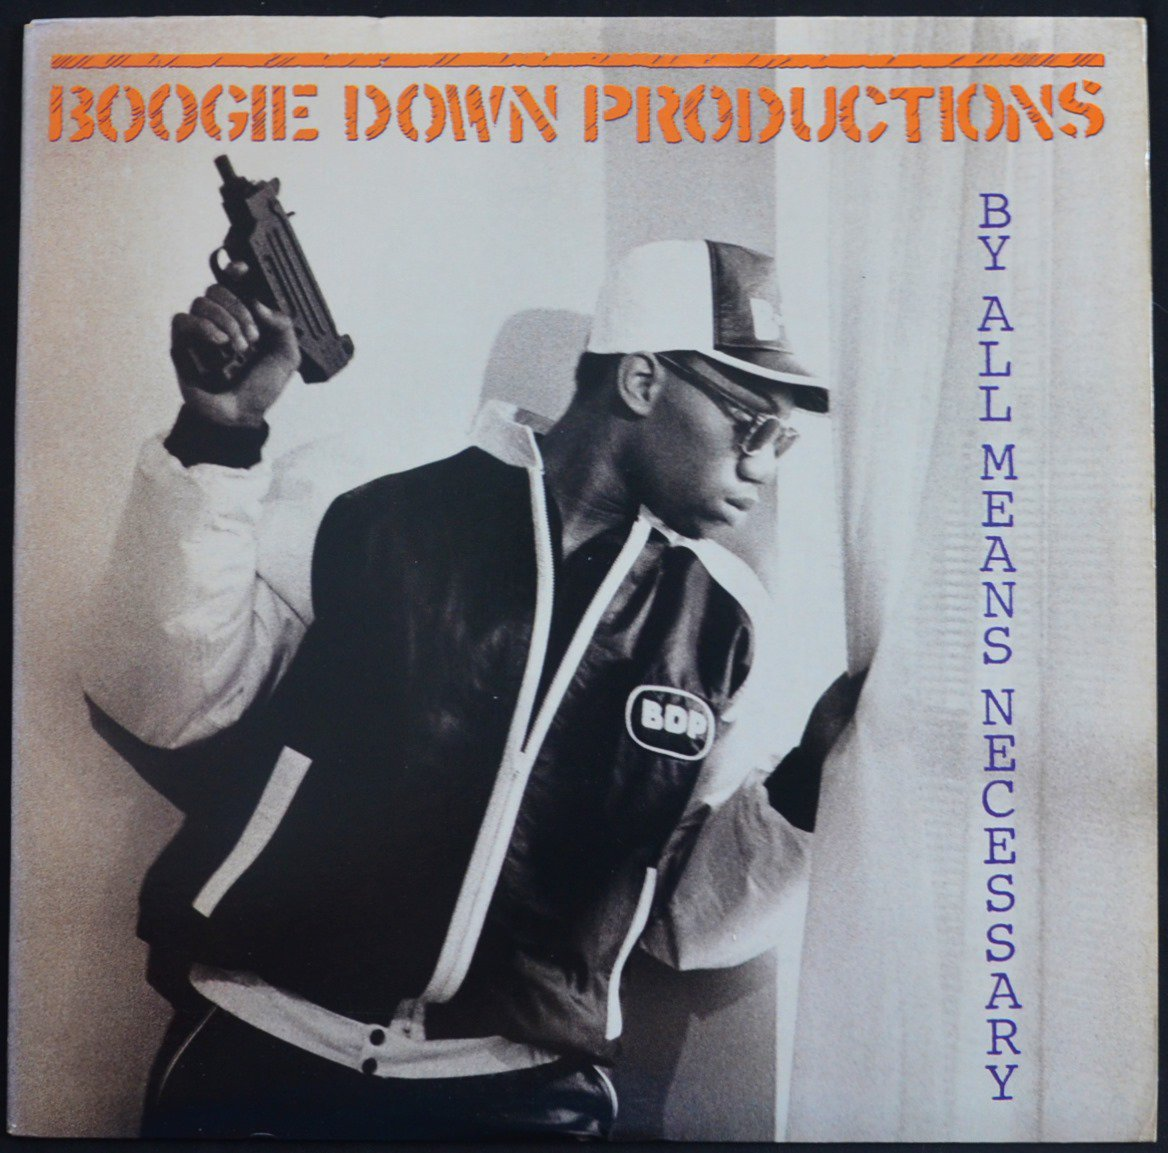 BOOGIE DOWN PRODUCTIONS / BY ALL MEANS NECESSARY (1LP)